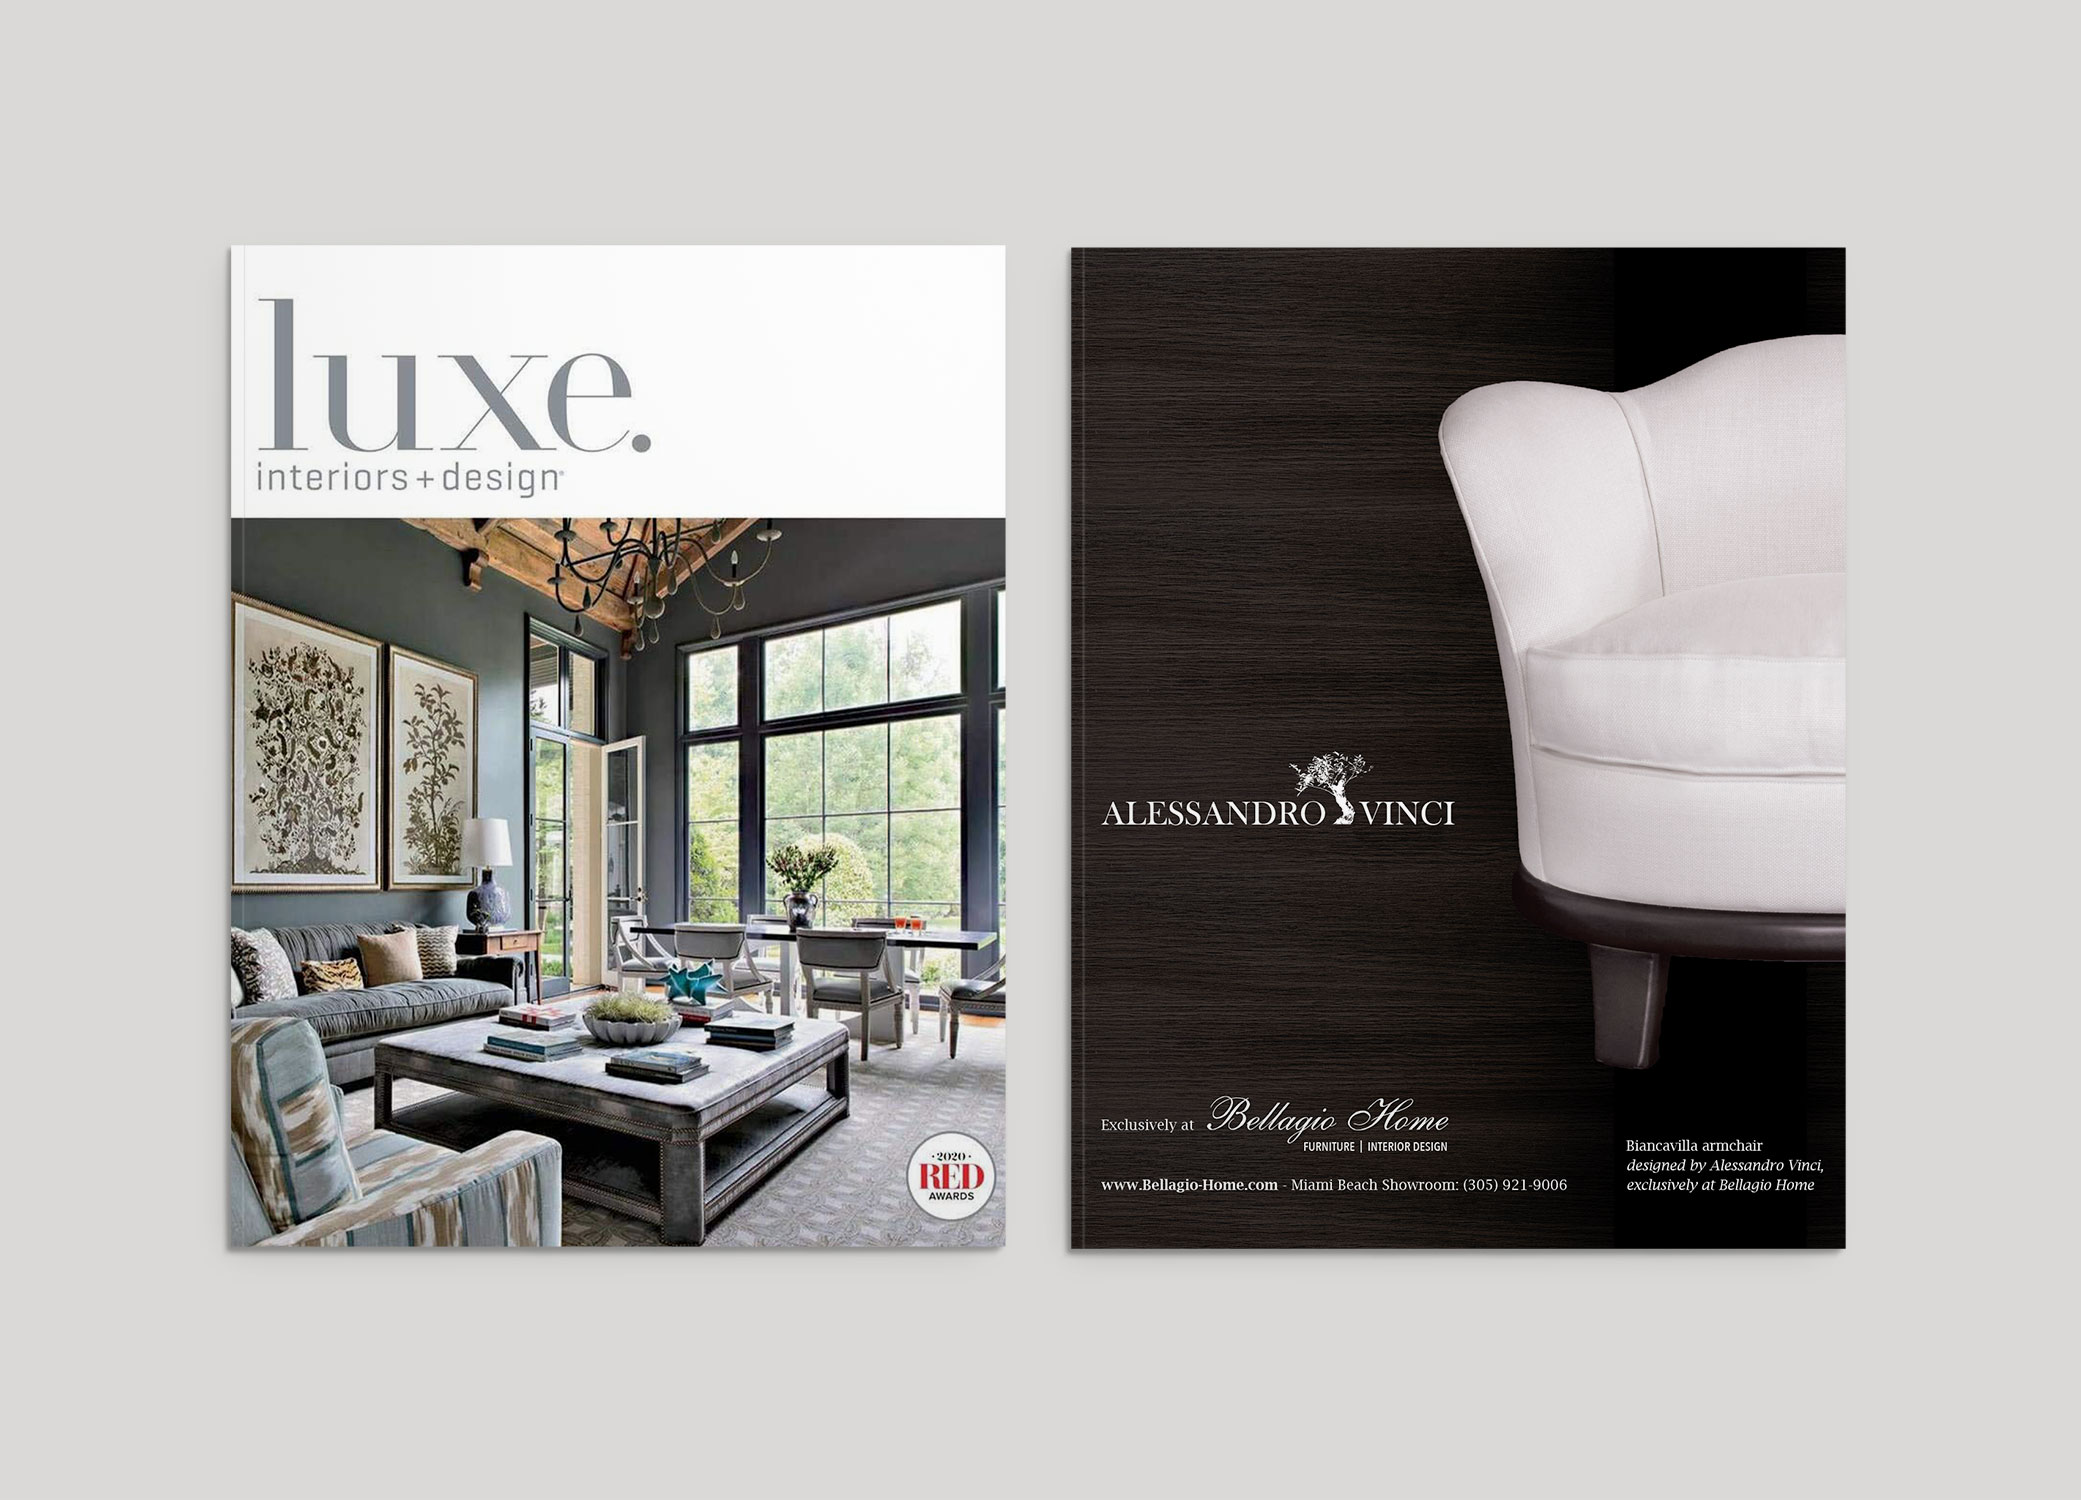 Bellagio Home design for Luxe Magazine front cover and inside featured page design against grey backdrop.